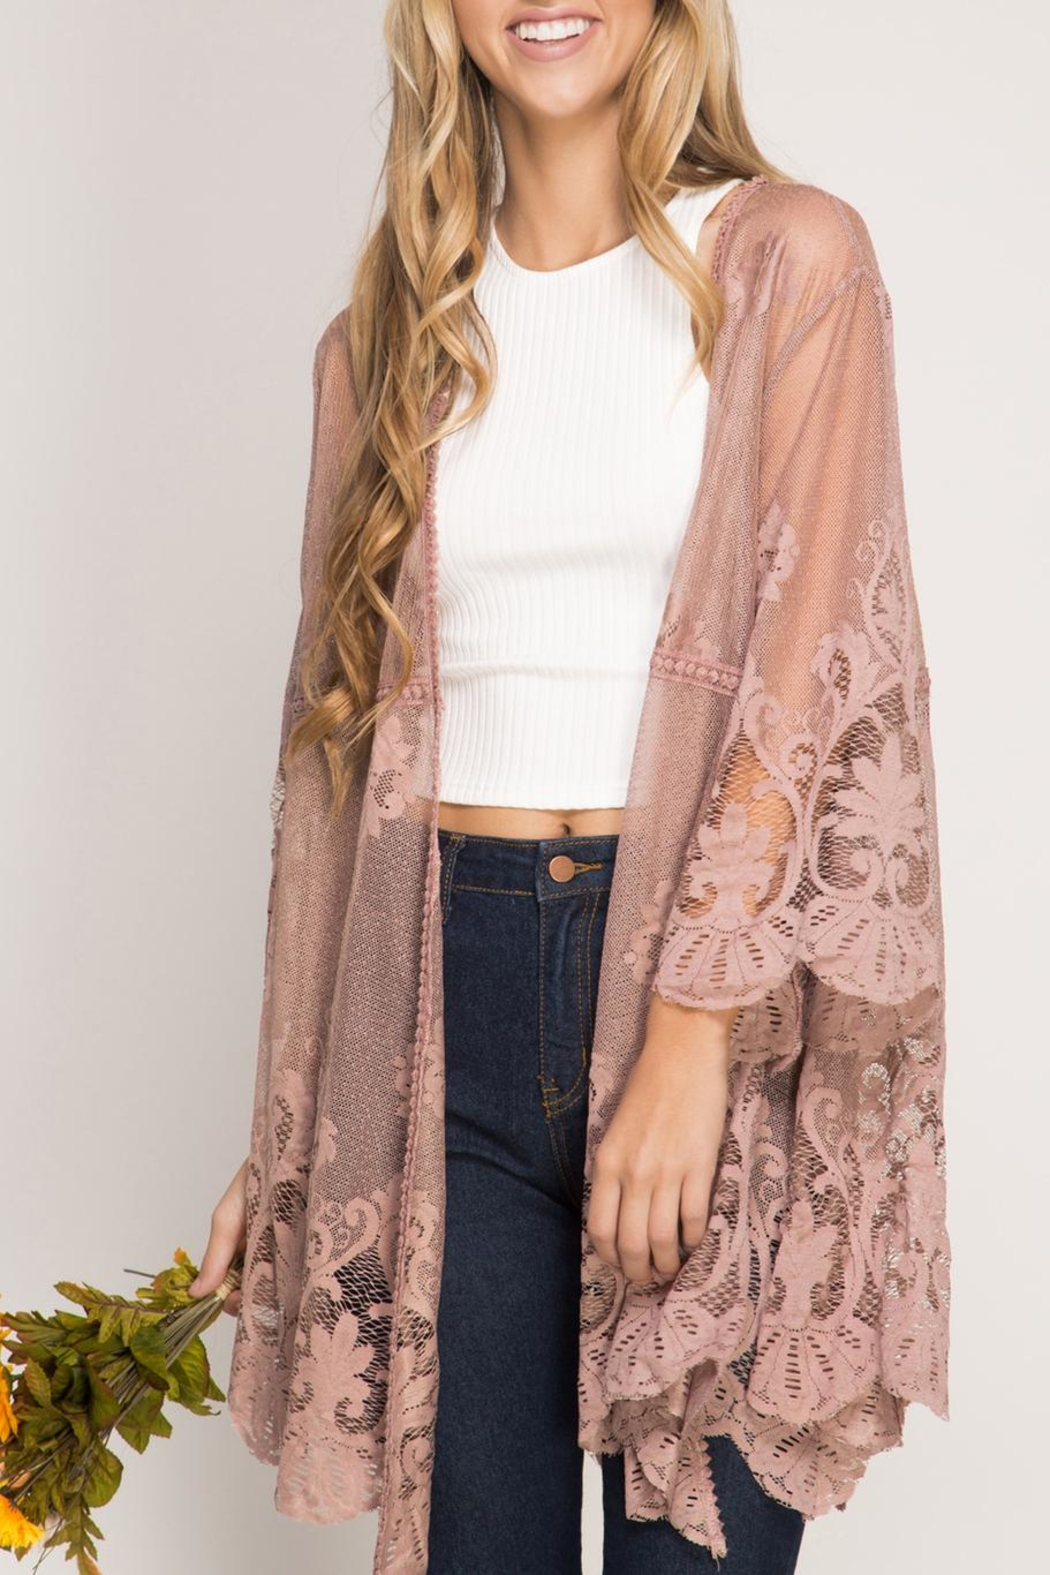 She   Sky Lace Kimono Cardigan from Florida by Dressing Room ...